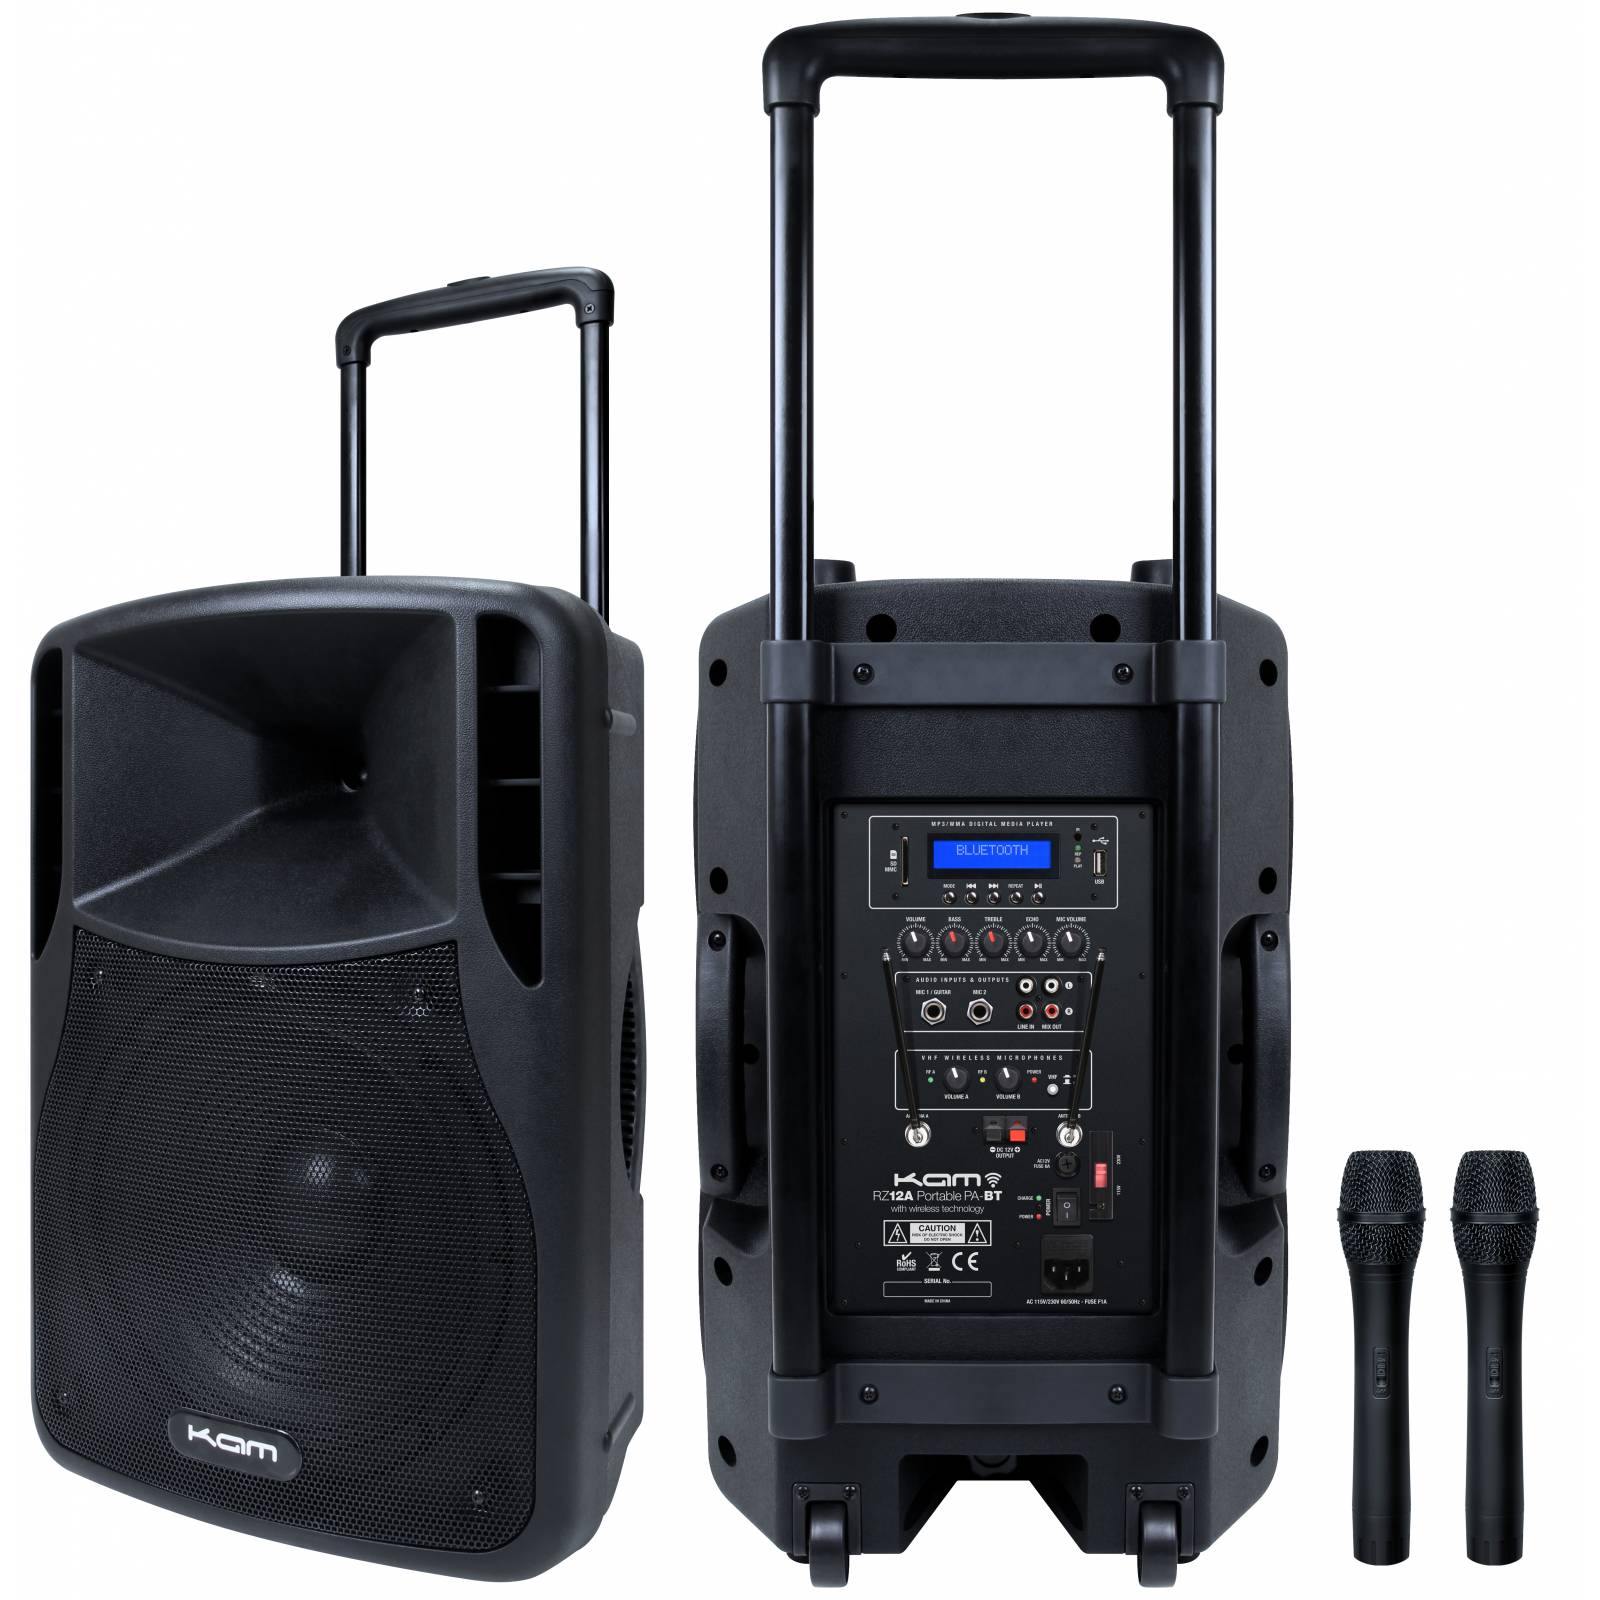 kam rz12a portable pa bt pa system with media player 250w complete pa system from inta audio uk. Black Bedroom Furniture Sets. Home Design Ideas